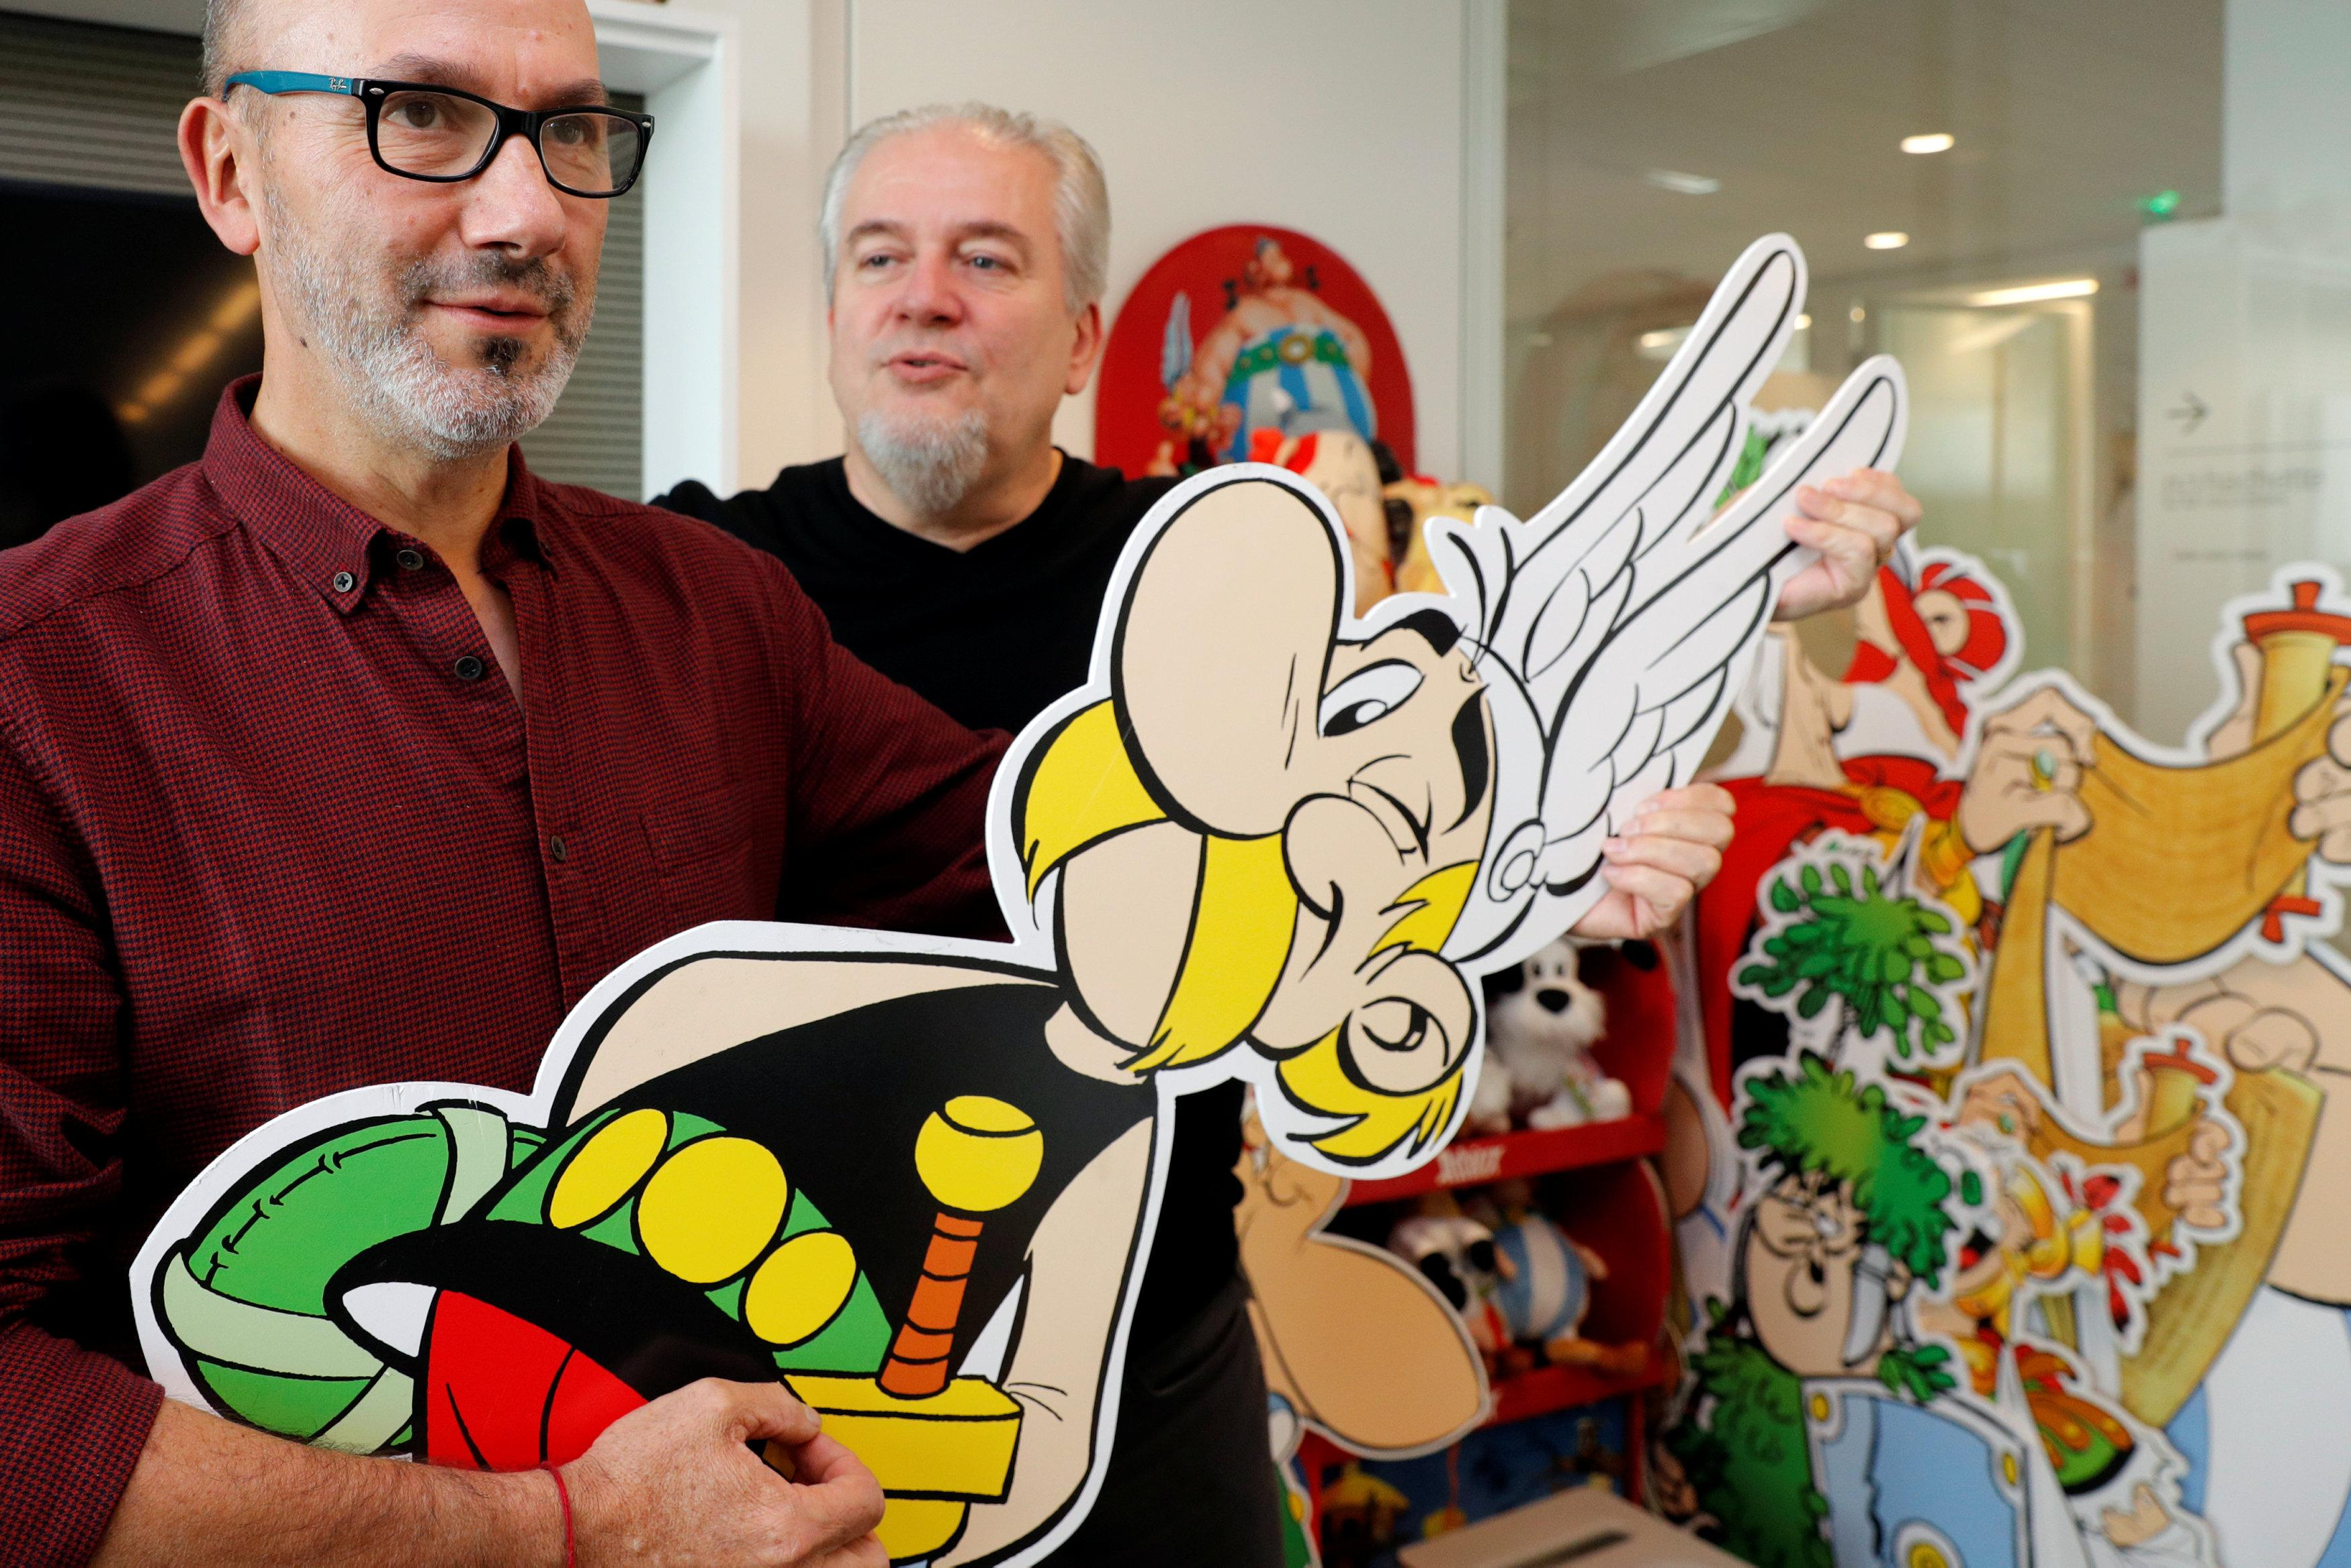 Author Jean-Yves Ferri (L) and illustrator Didier Conrad (R) pose holding a cardboard cut-out of Asterix during an interview for their new comic album